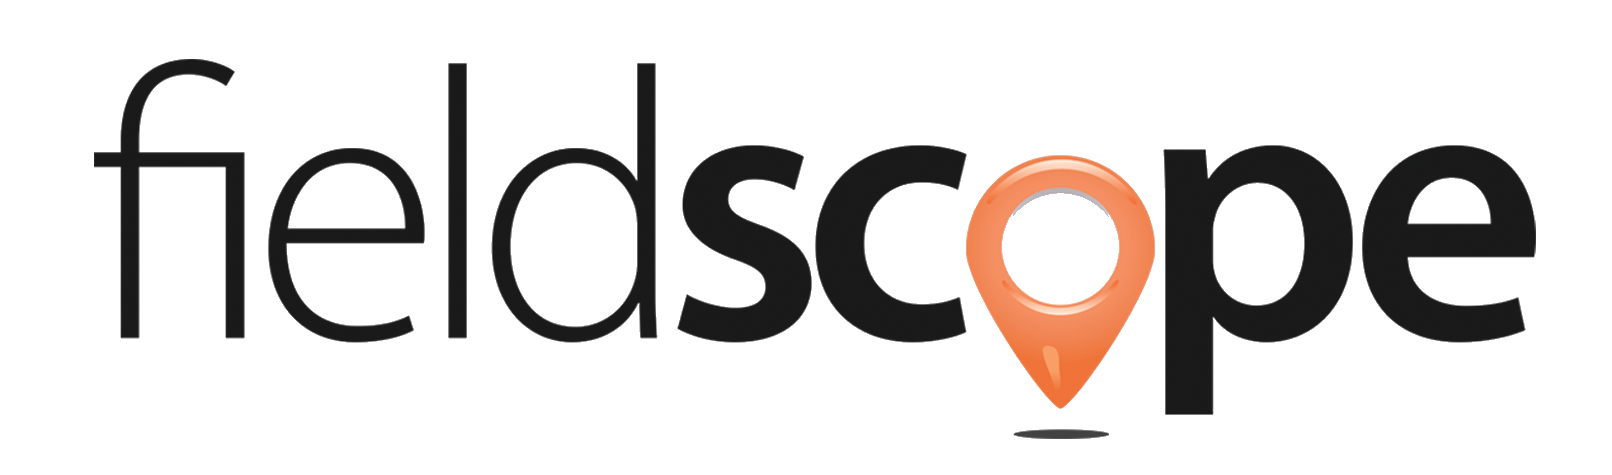 Fieldscope